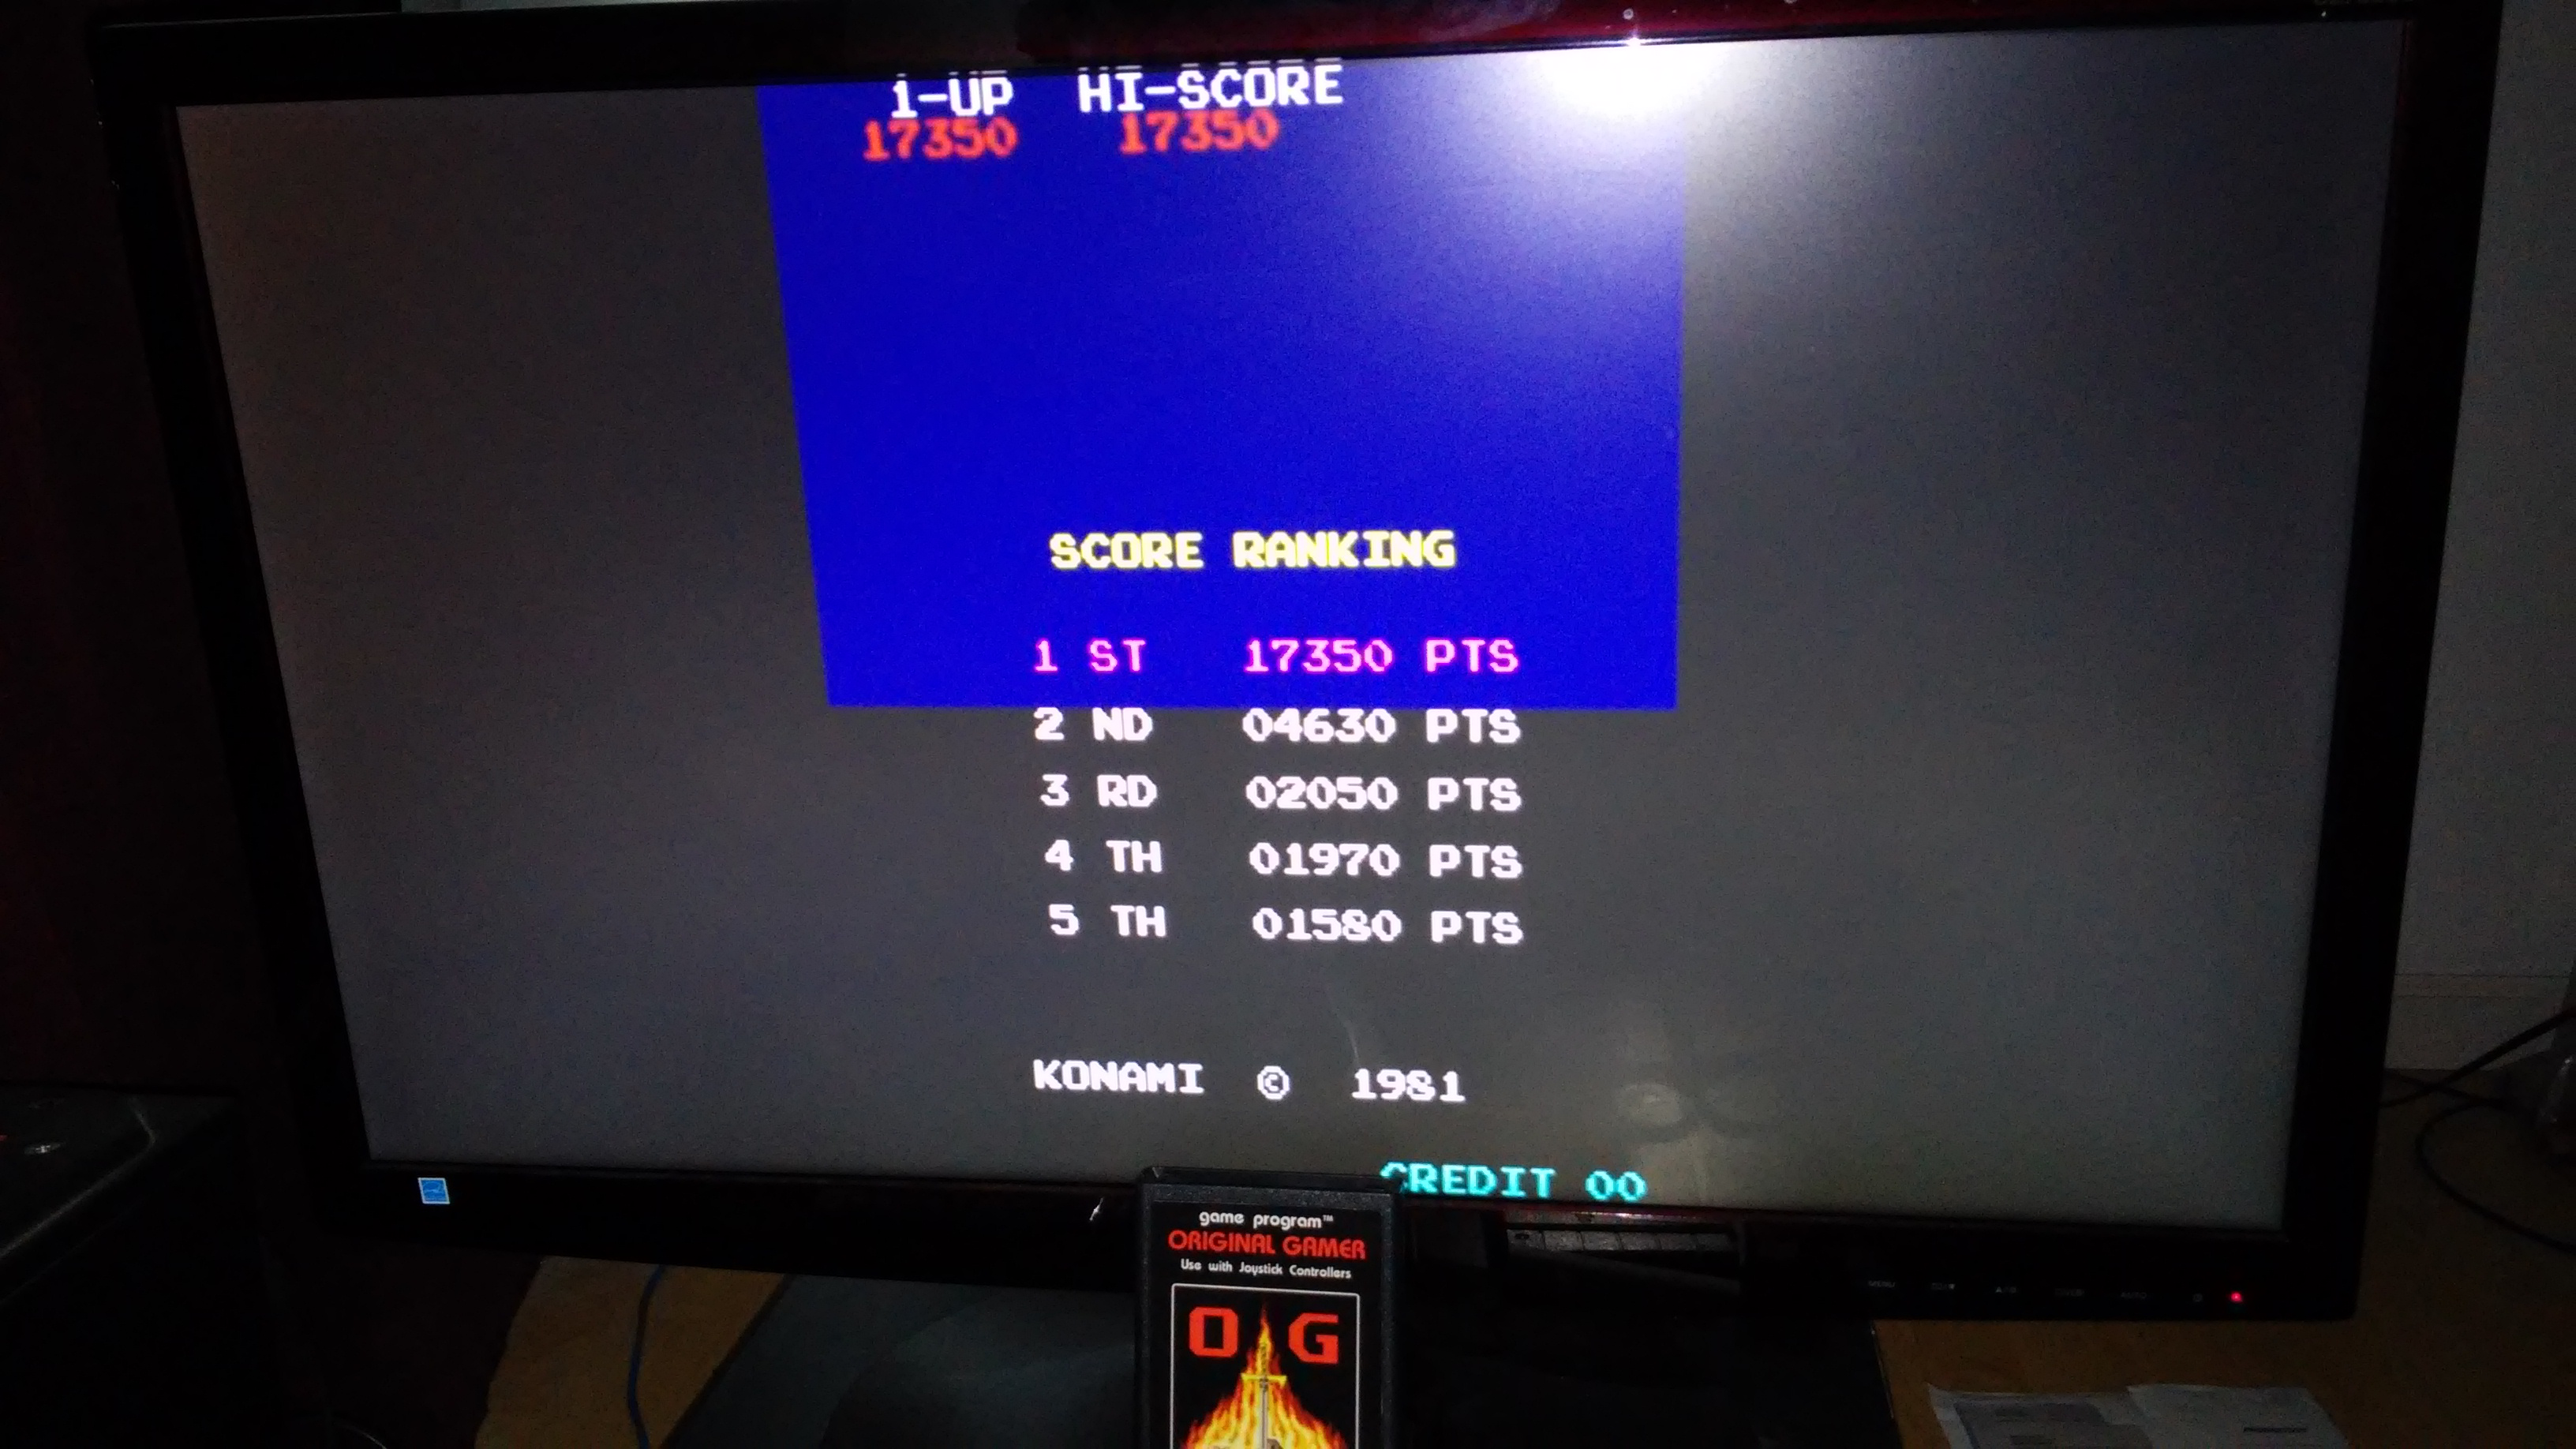 Frogger 17,350 points